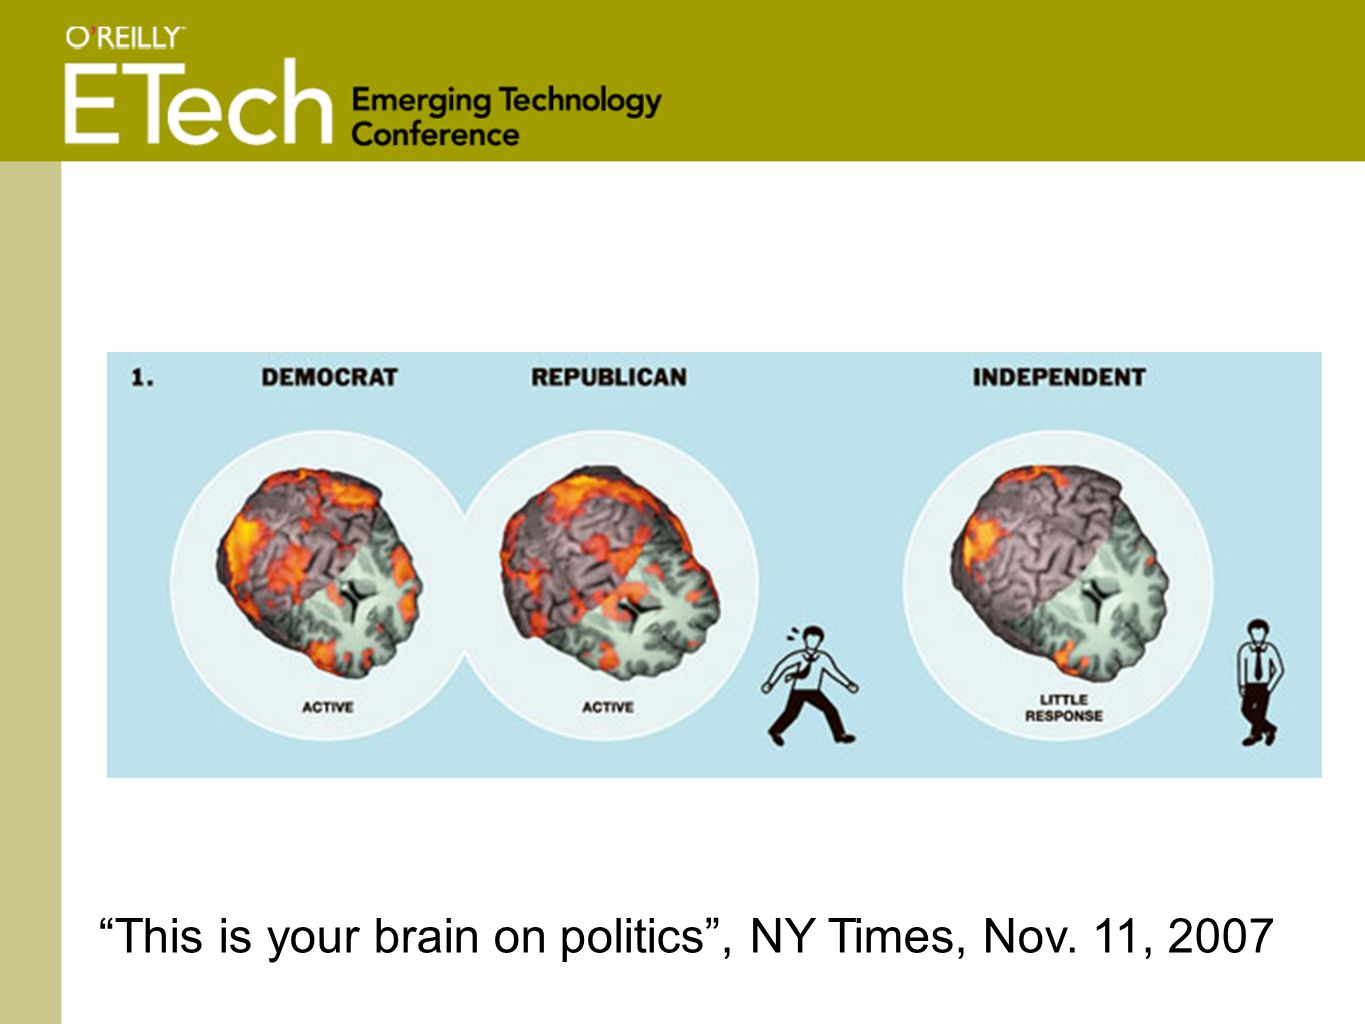 This is your brain on politics , NY Times, Nov. 11, 2007